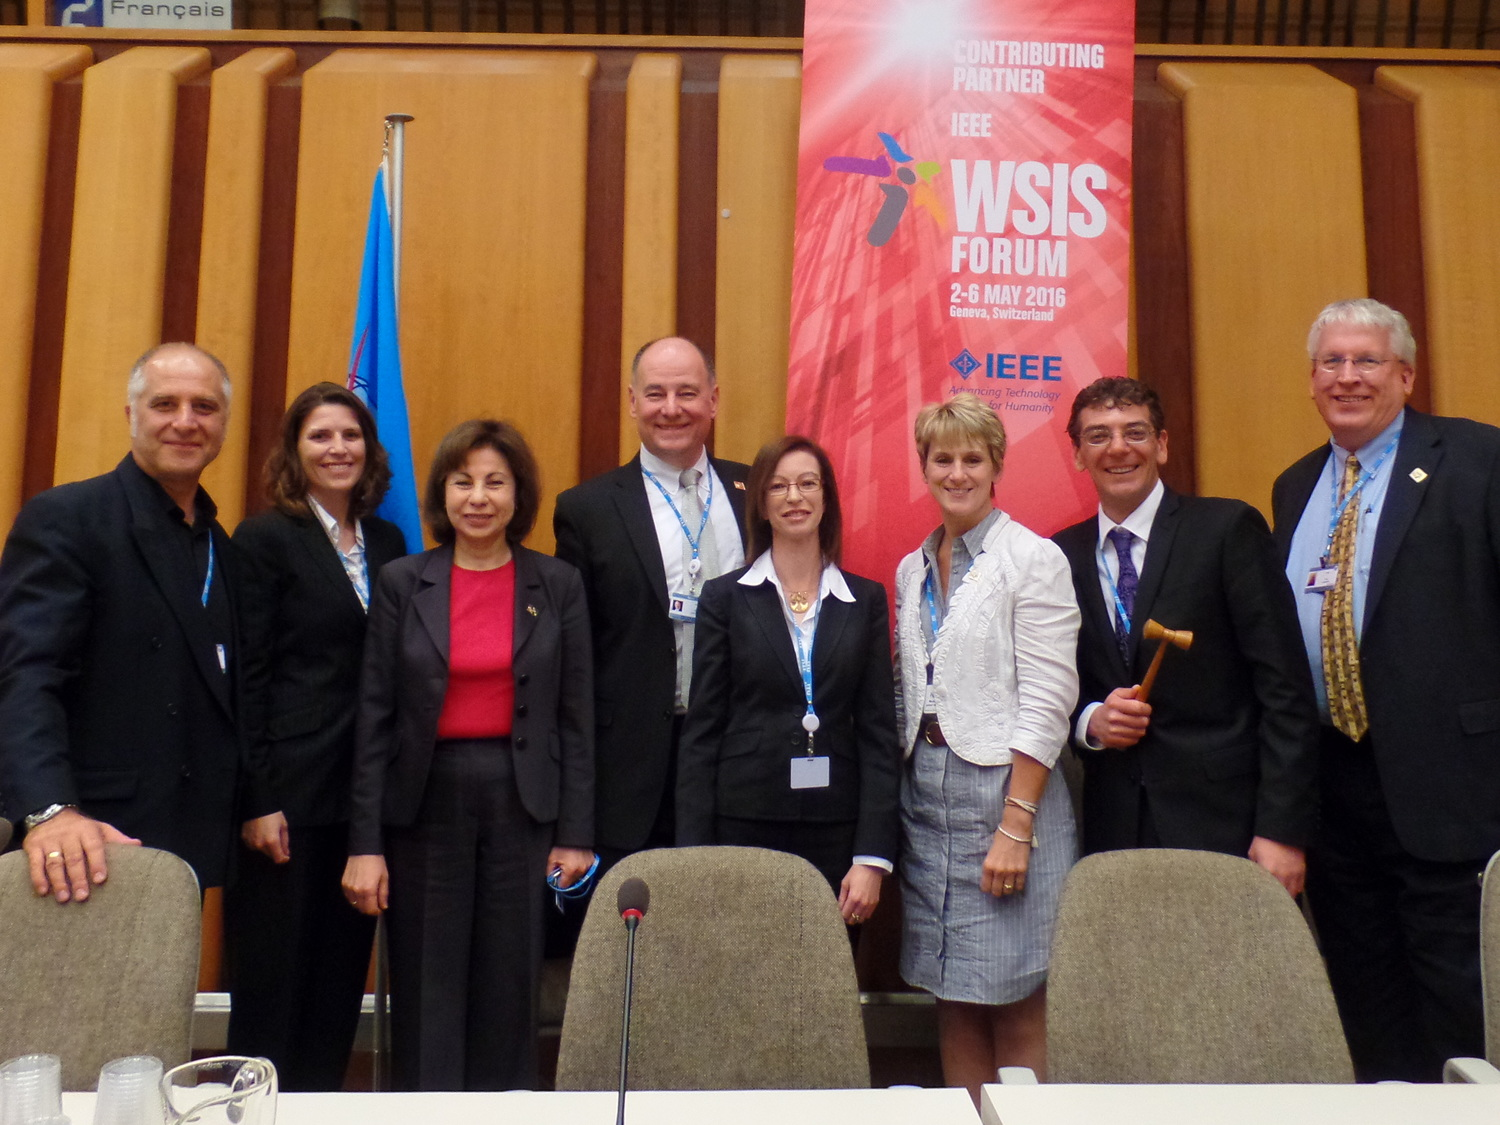 MG Michael with fellow IEEE Panelists at the WSIS Forum 2016 (Geneva, Switzerland)